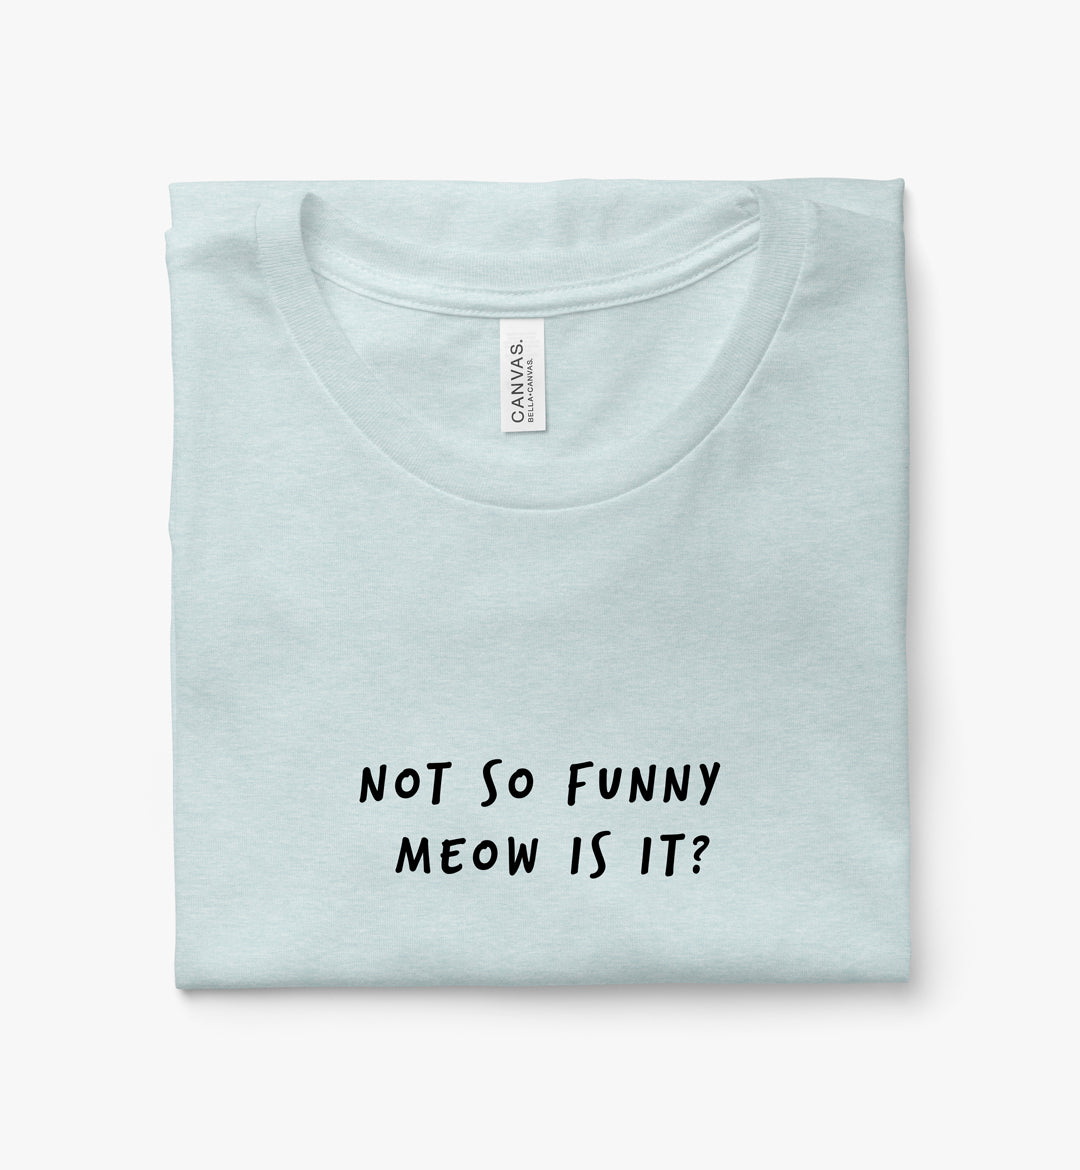 Not so Funny Meow Is It?